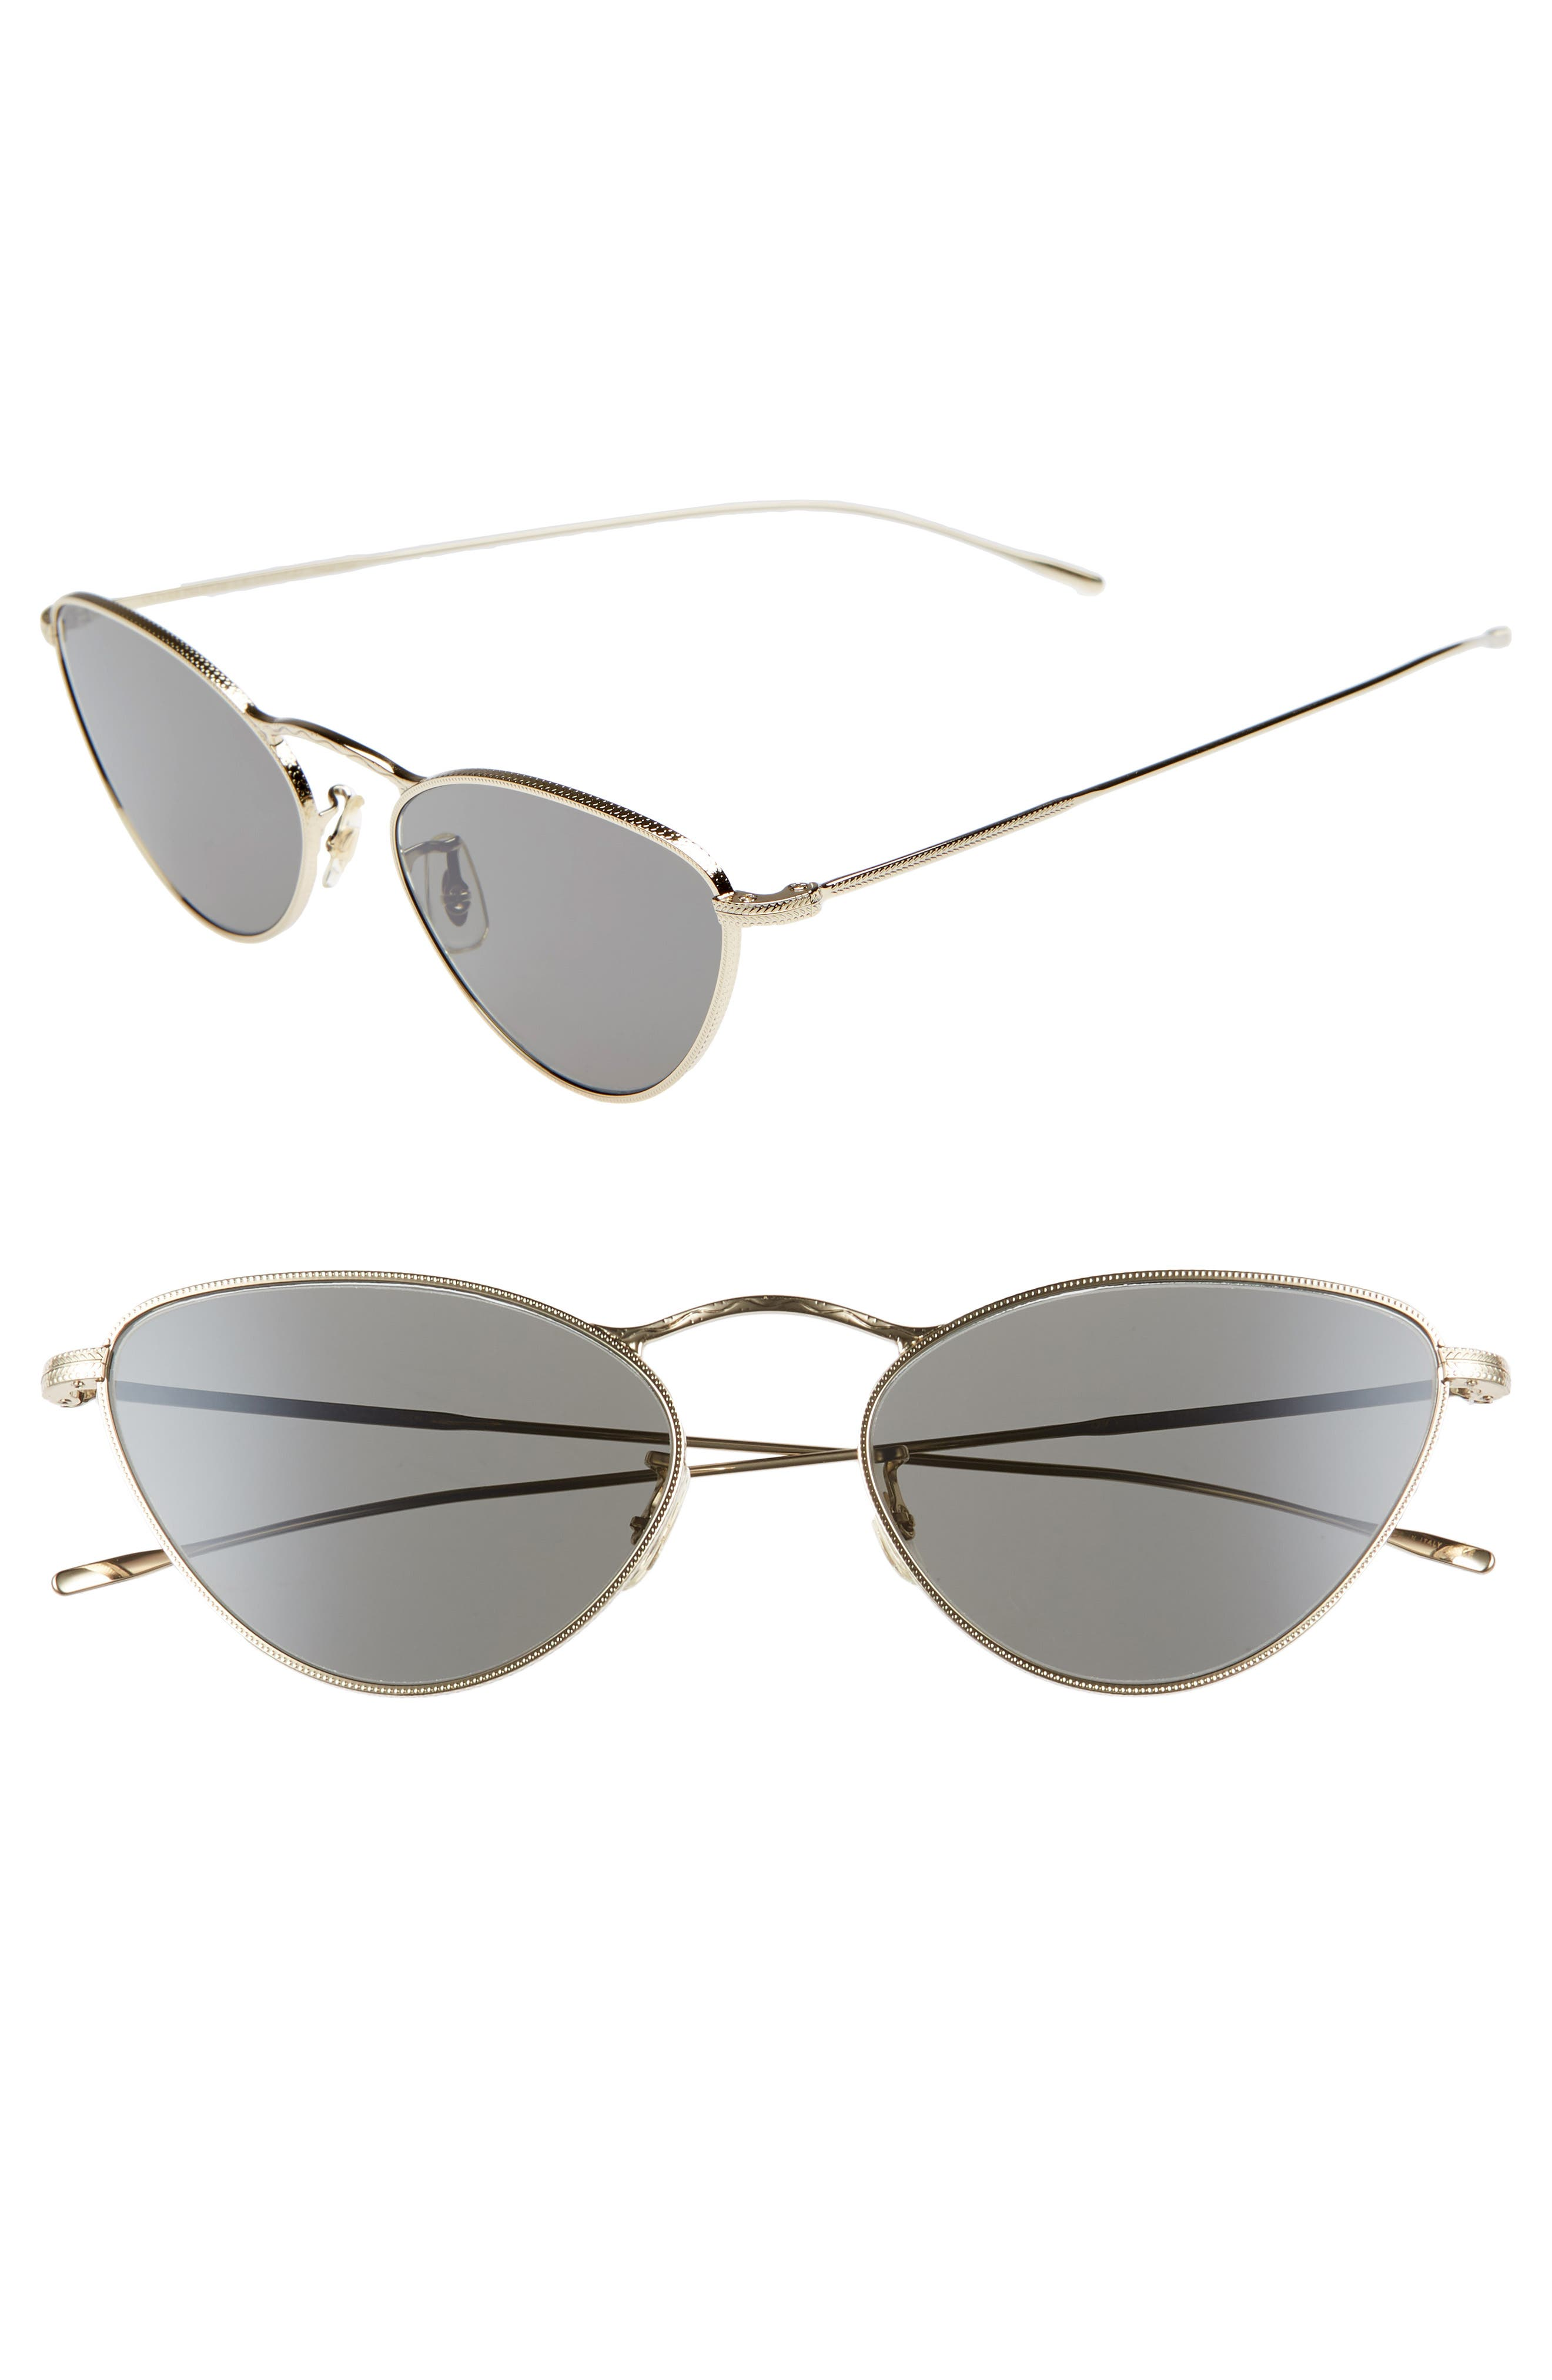 Oliver Peoples Lelaina 5m Cat Eye Sunglasses - Carbon Gray/ Gold